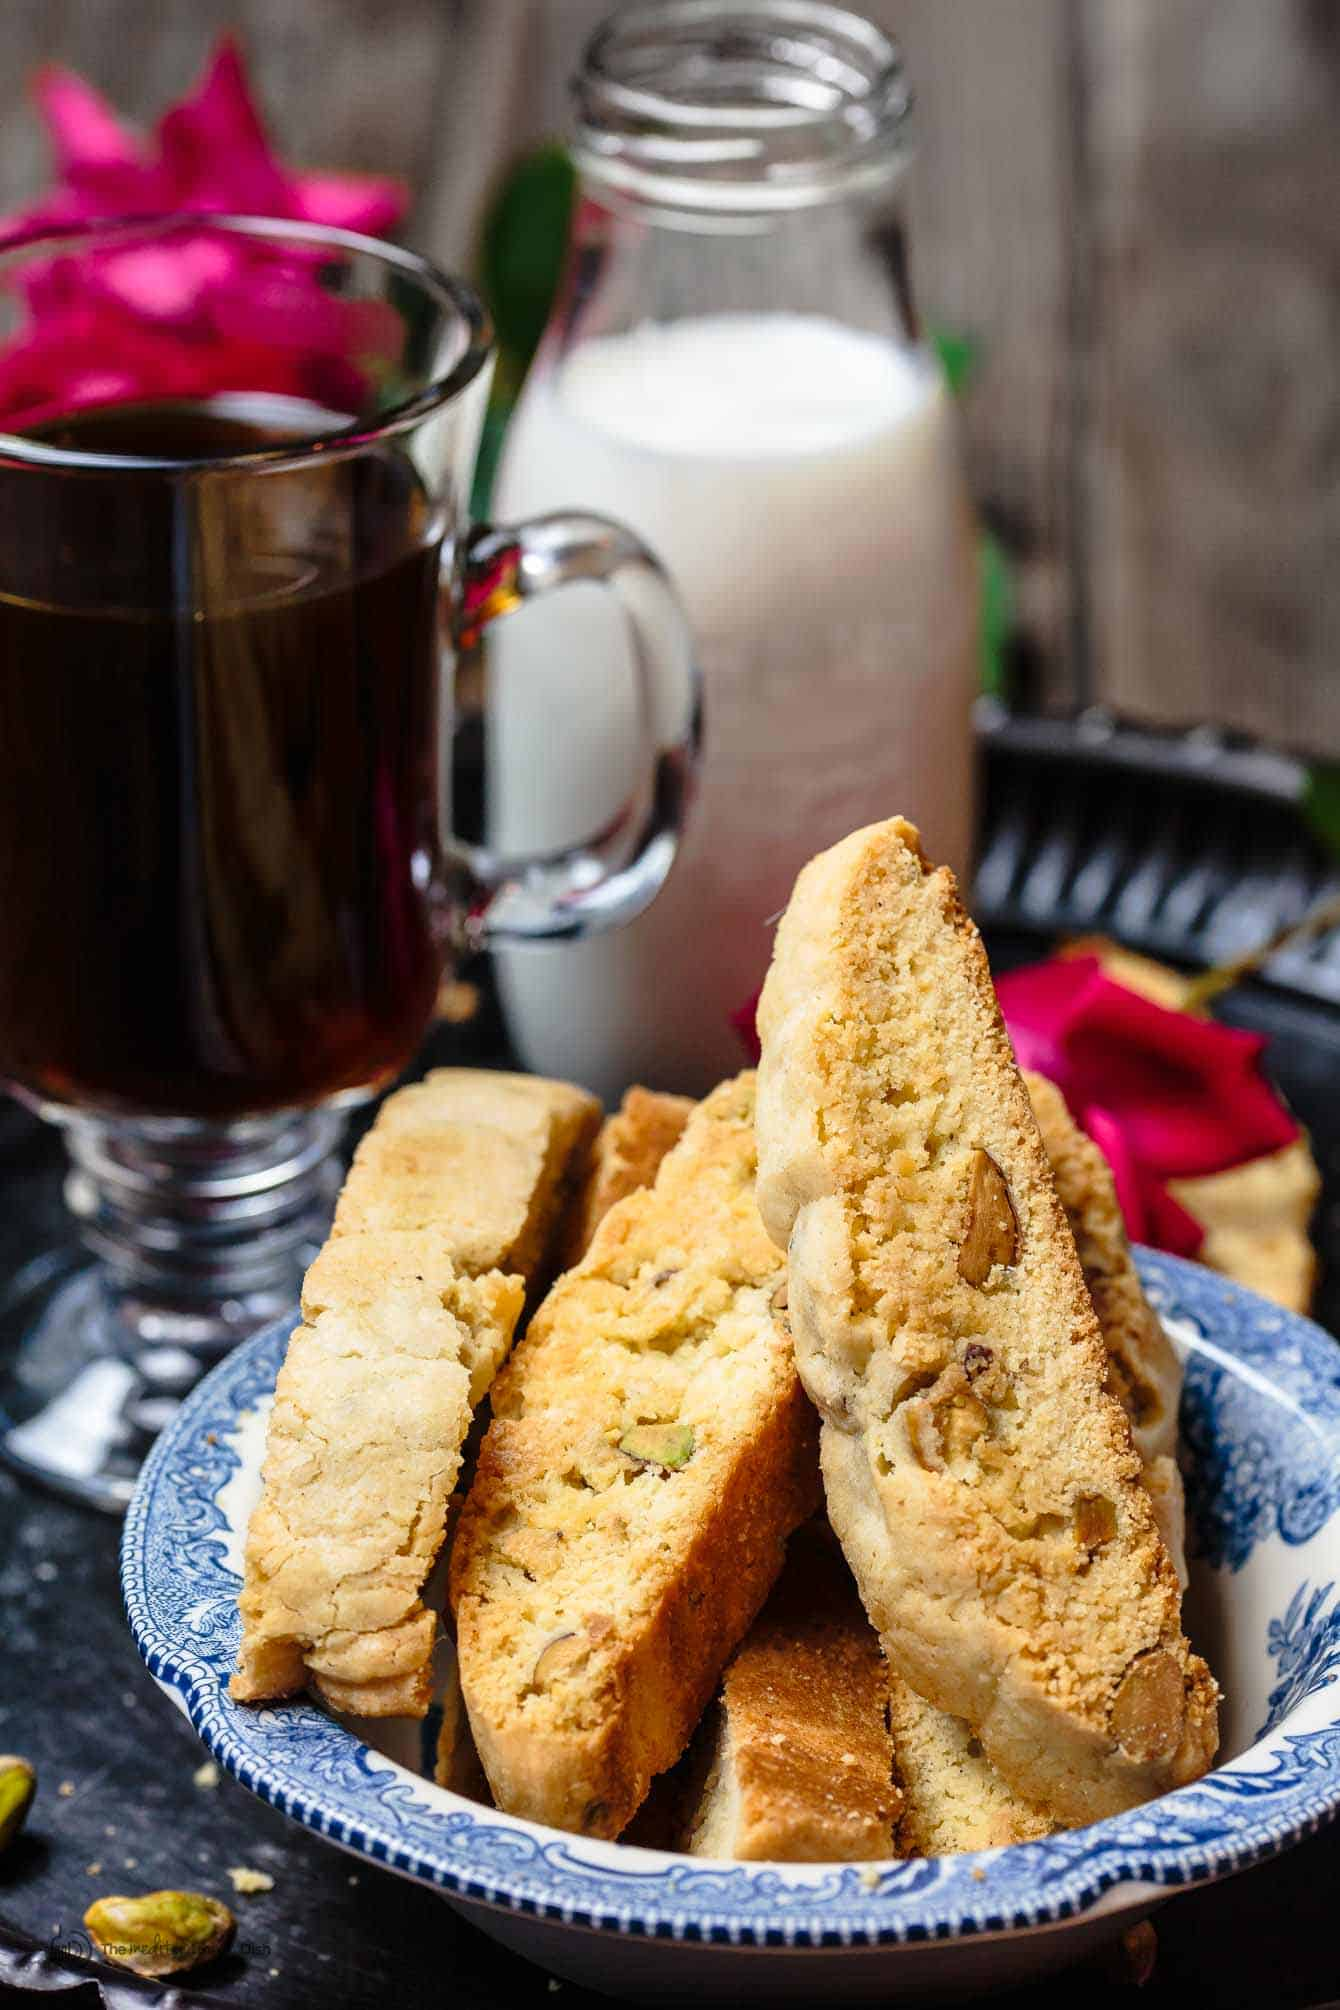 Pistachio Biscotti with Coffee and Milk on a Tray